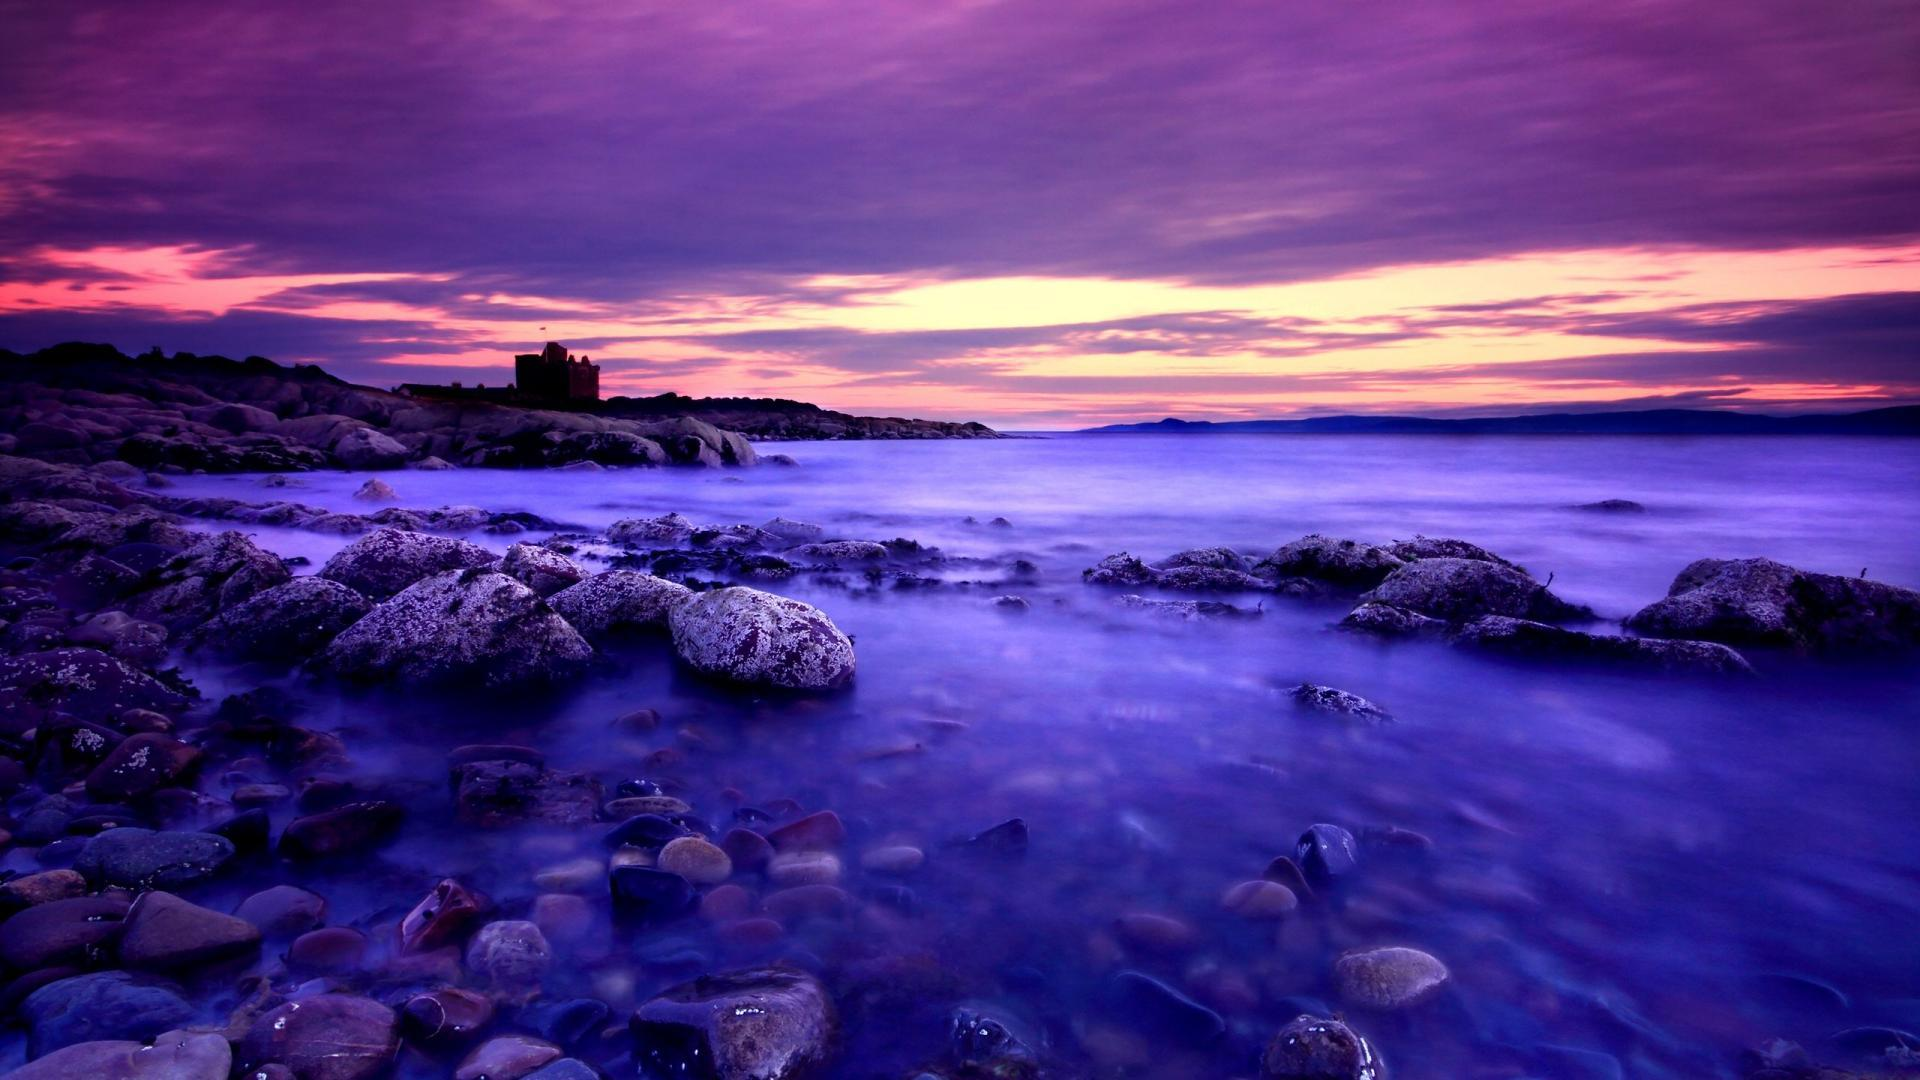 Purple sunset wallpapers wallpaper cave - Hd wallpaper for laptop 14 inch ...